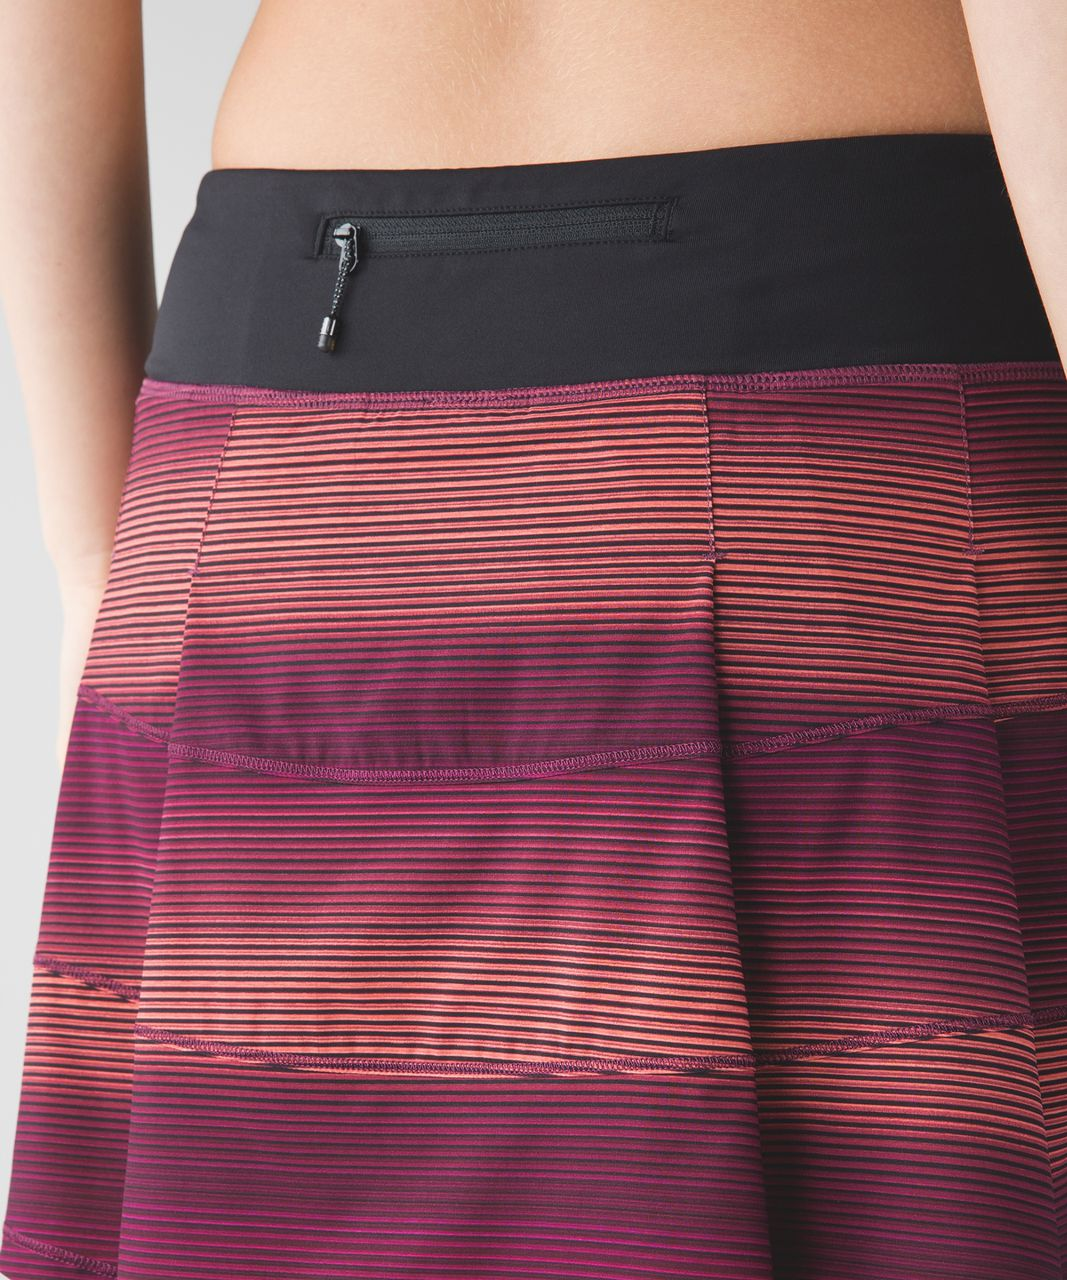 Lululemon Pace Rival Skirt II (Tall) - Simply Radiant Pink Paradise Black / Black